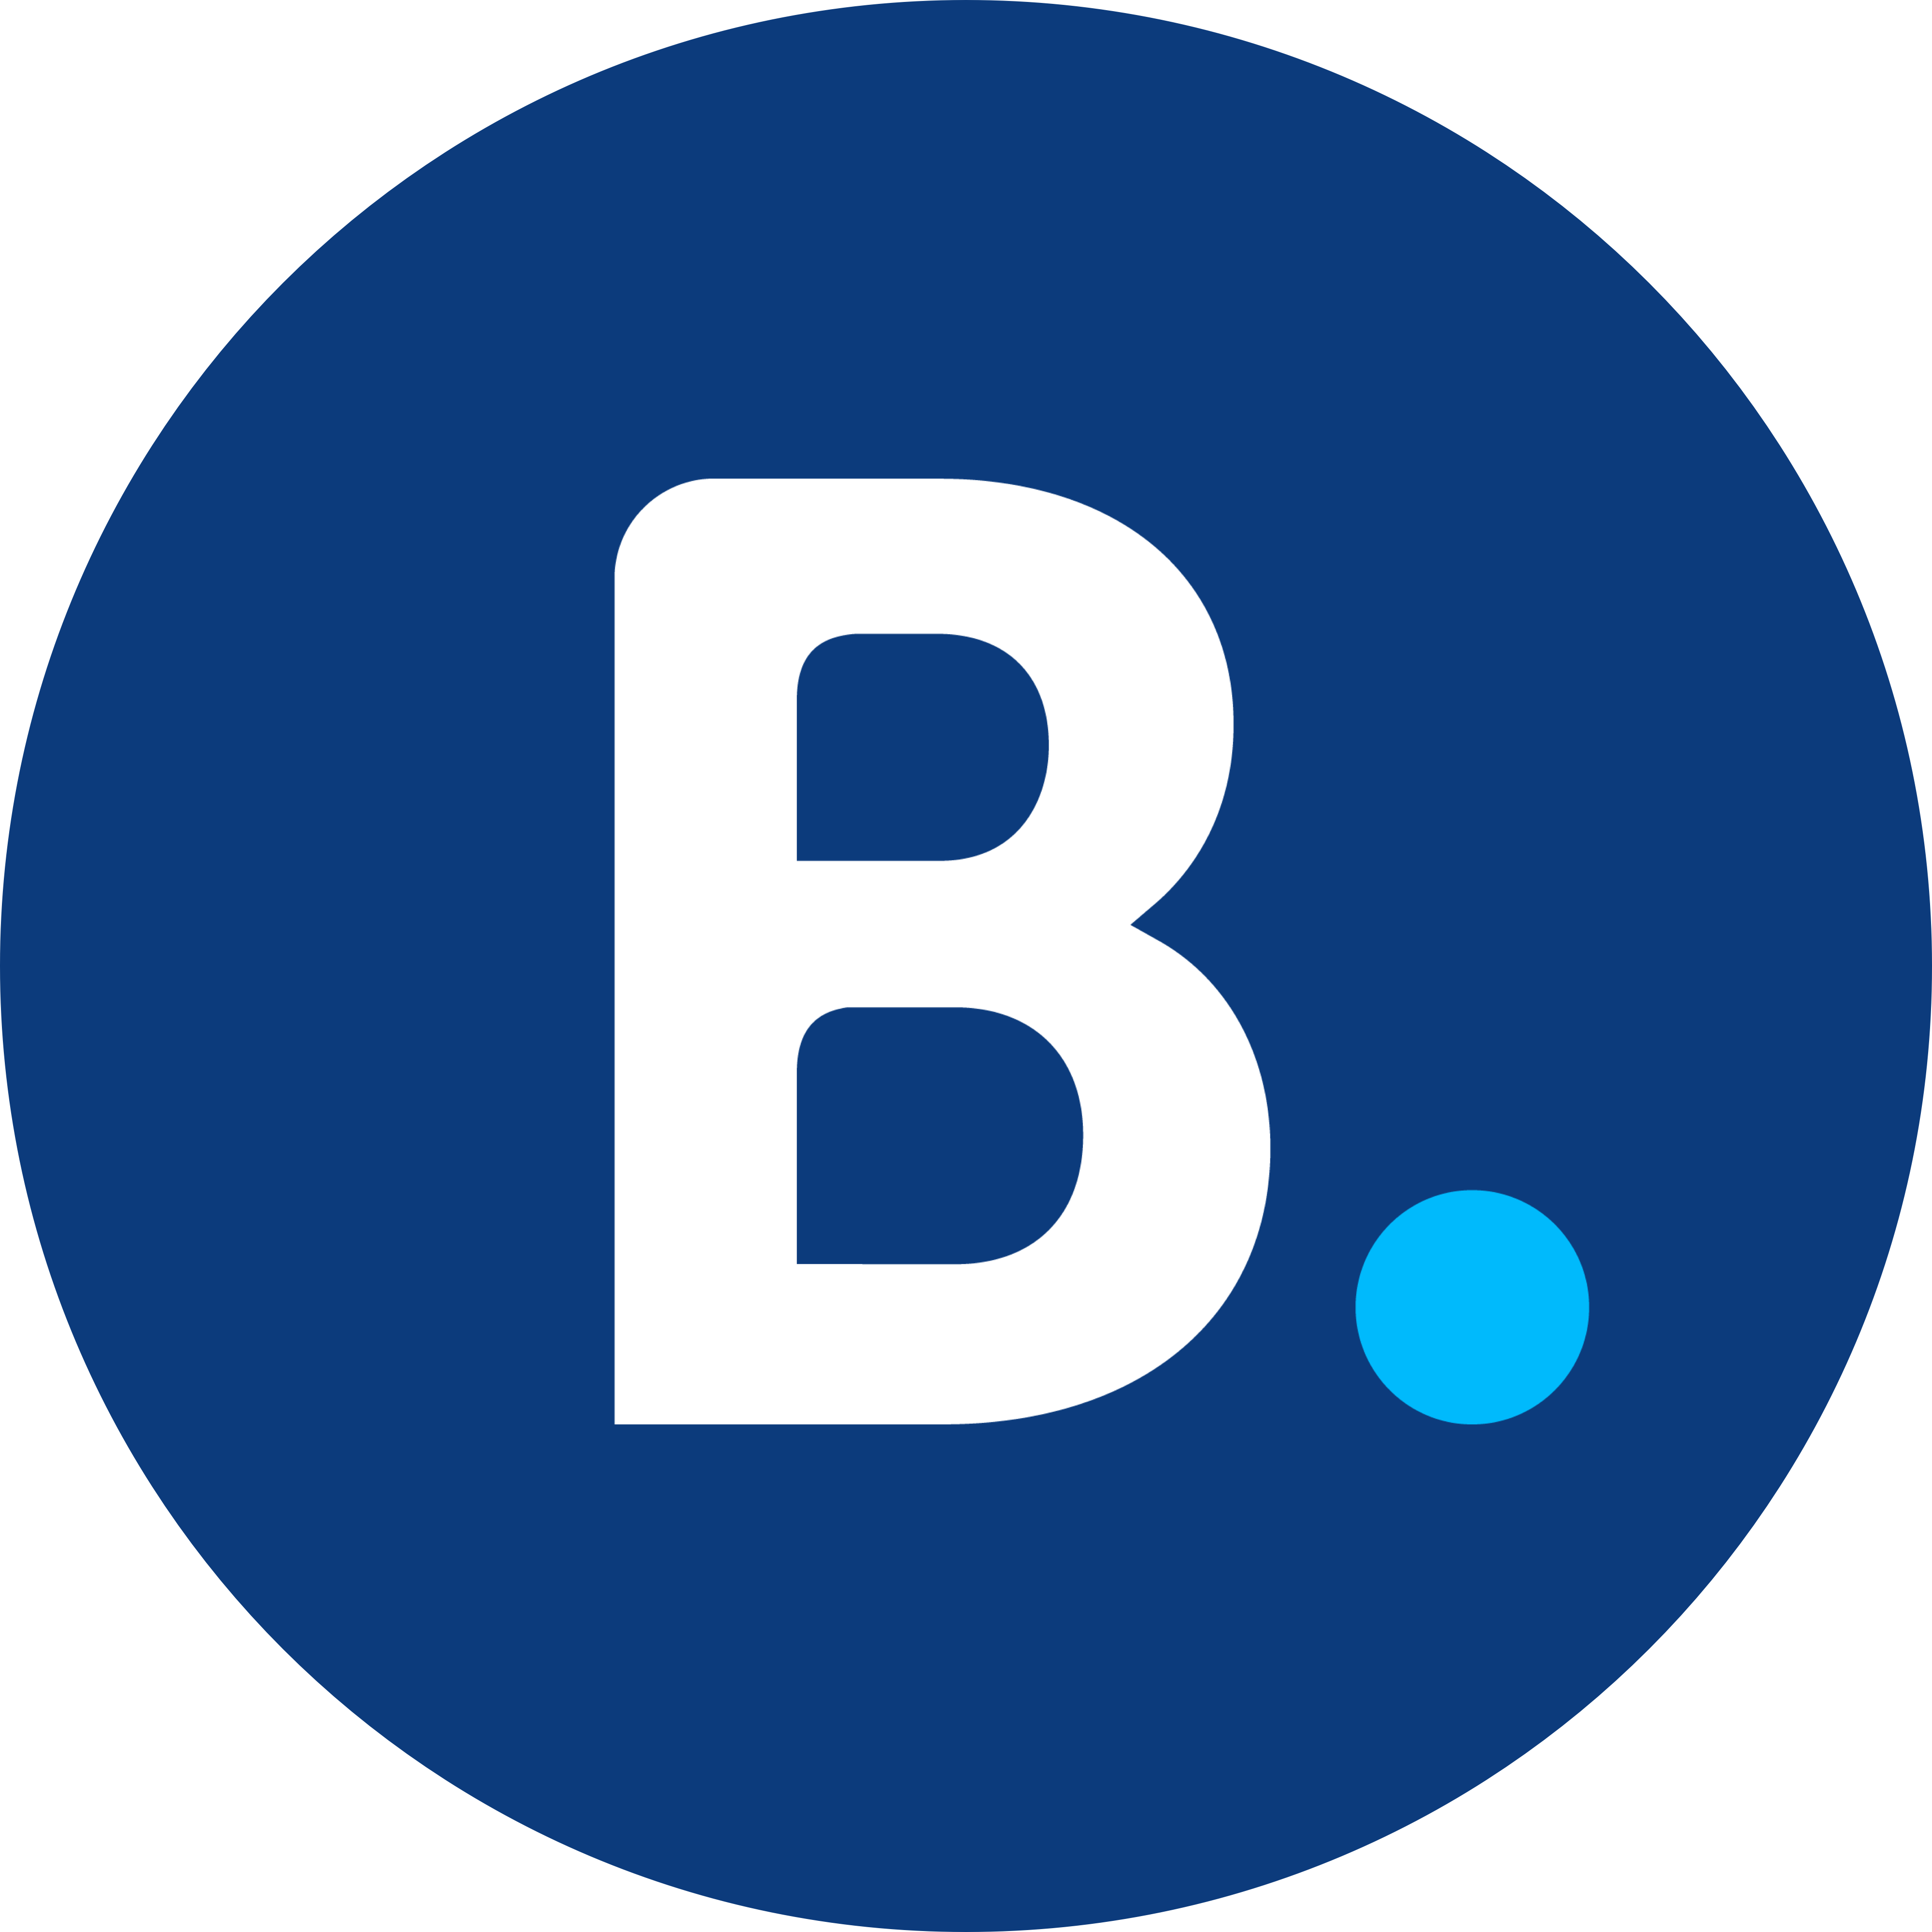 Booking.com logo.